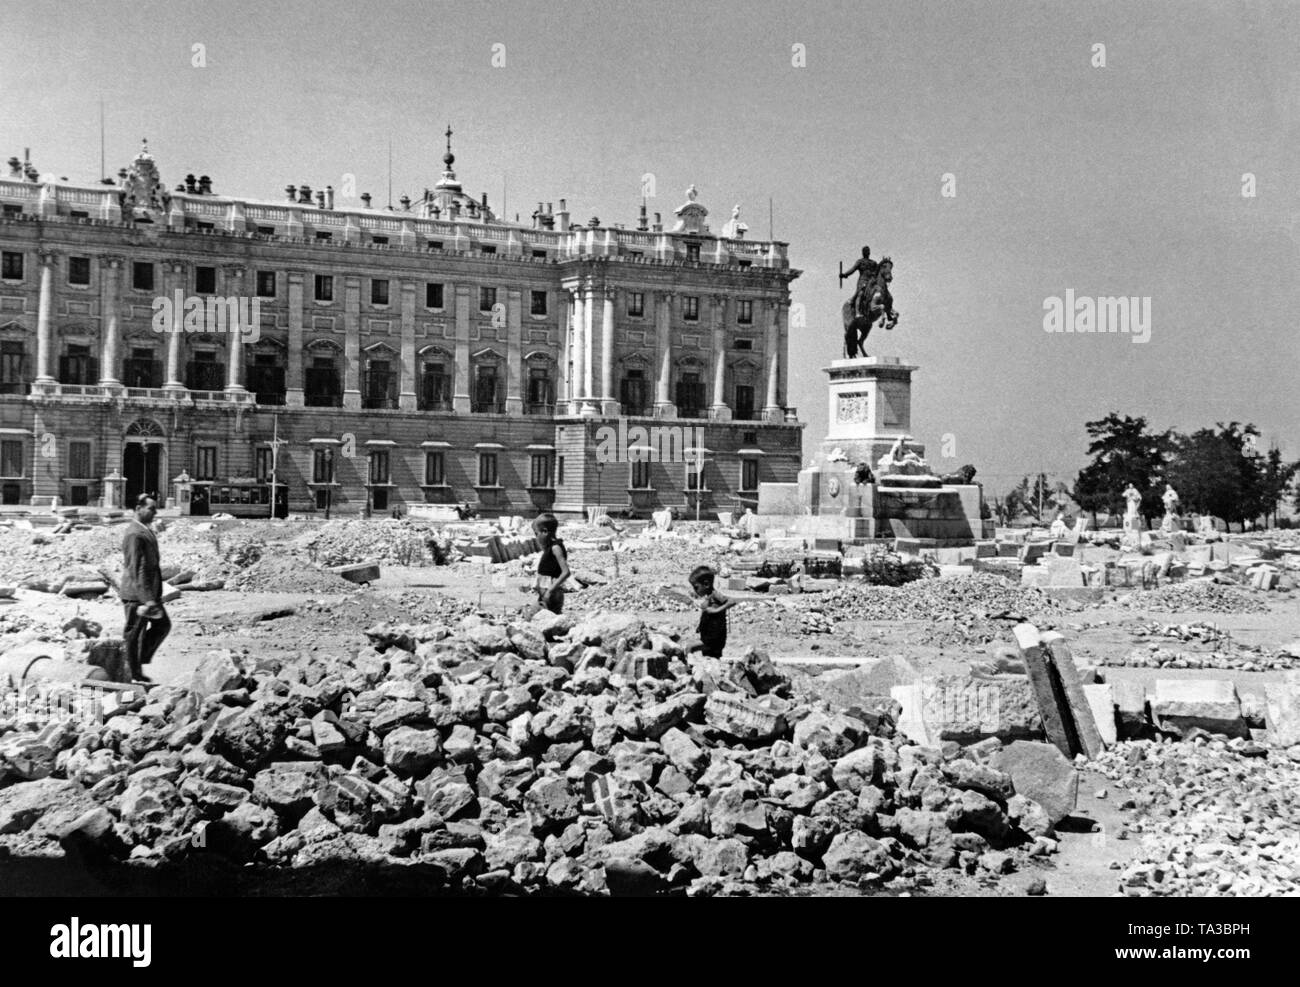 Photo of the Plaza del Oriente in Madrid after the invasion of the Spanish troops under General Francisco Franco in ther spring of 1939. In the background, the Spanish Royal Palace (Palacio Real). In front of it, the equestrian statue of King Philip IV (Felipe IV, 1605-1665). The pavement of the square is torn open for barricade construction. Children are playing. - Stock Image